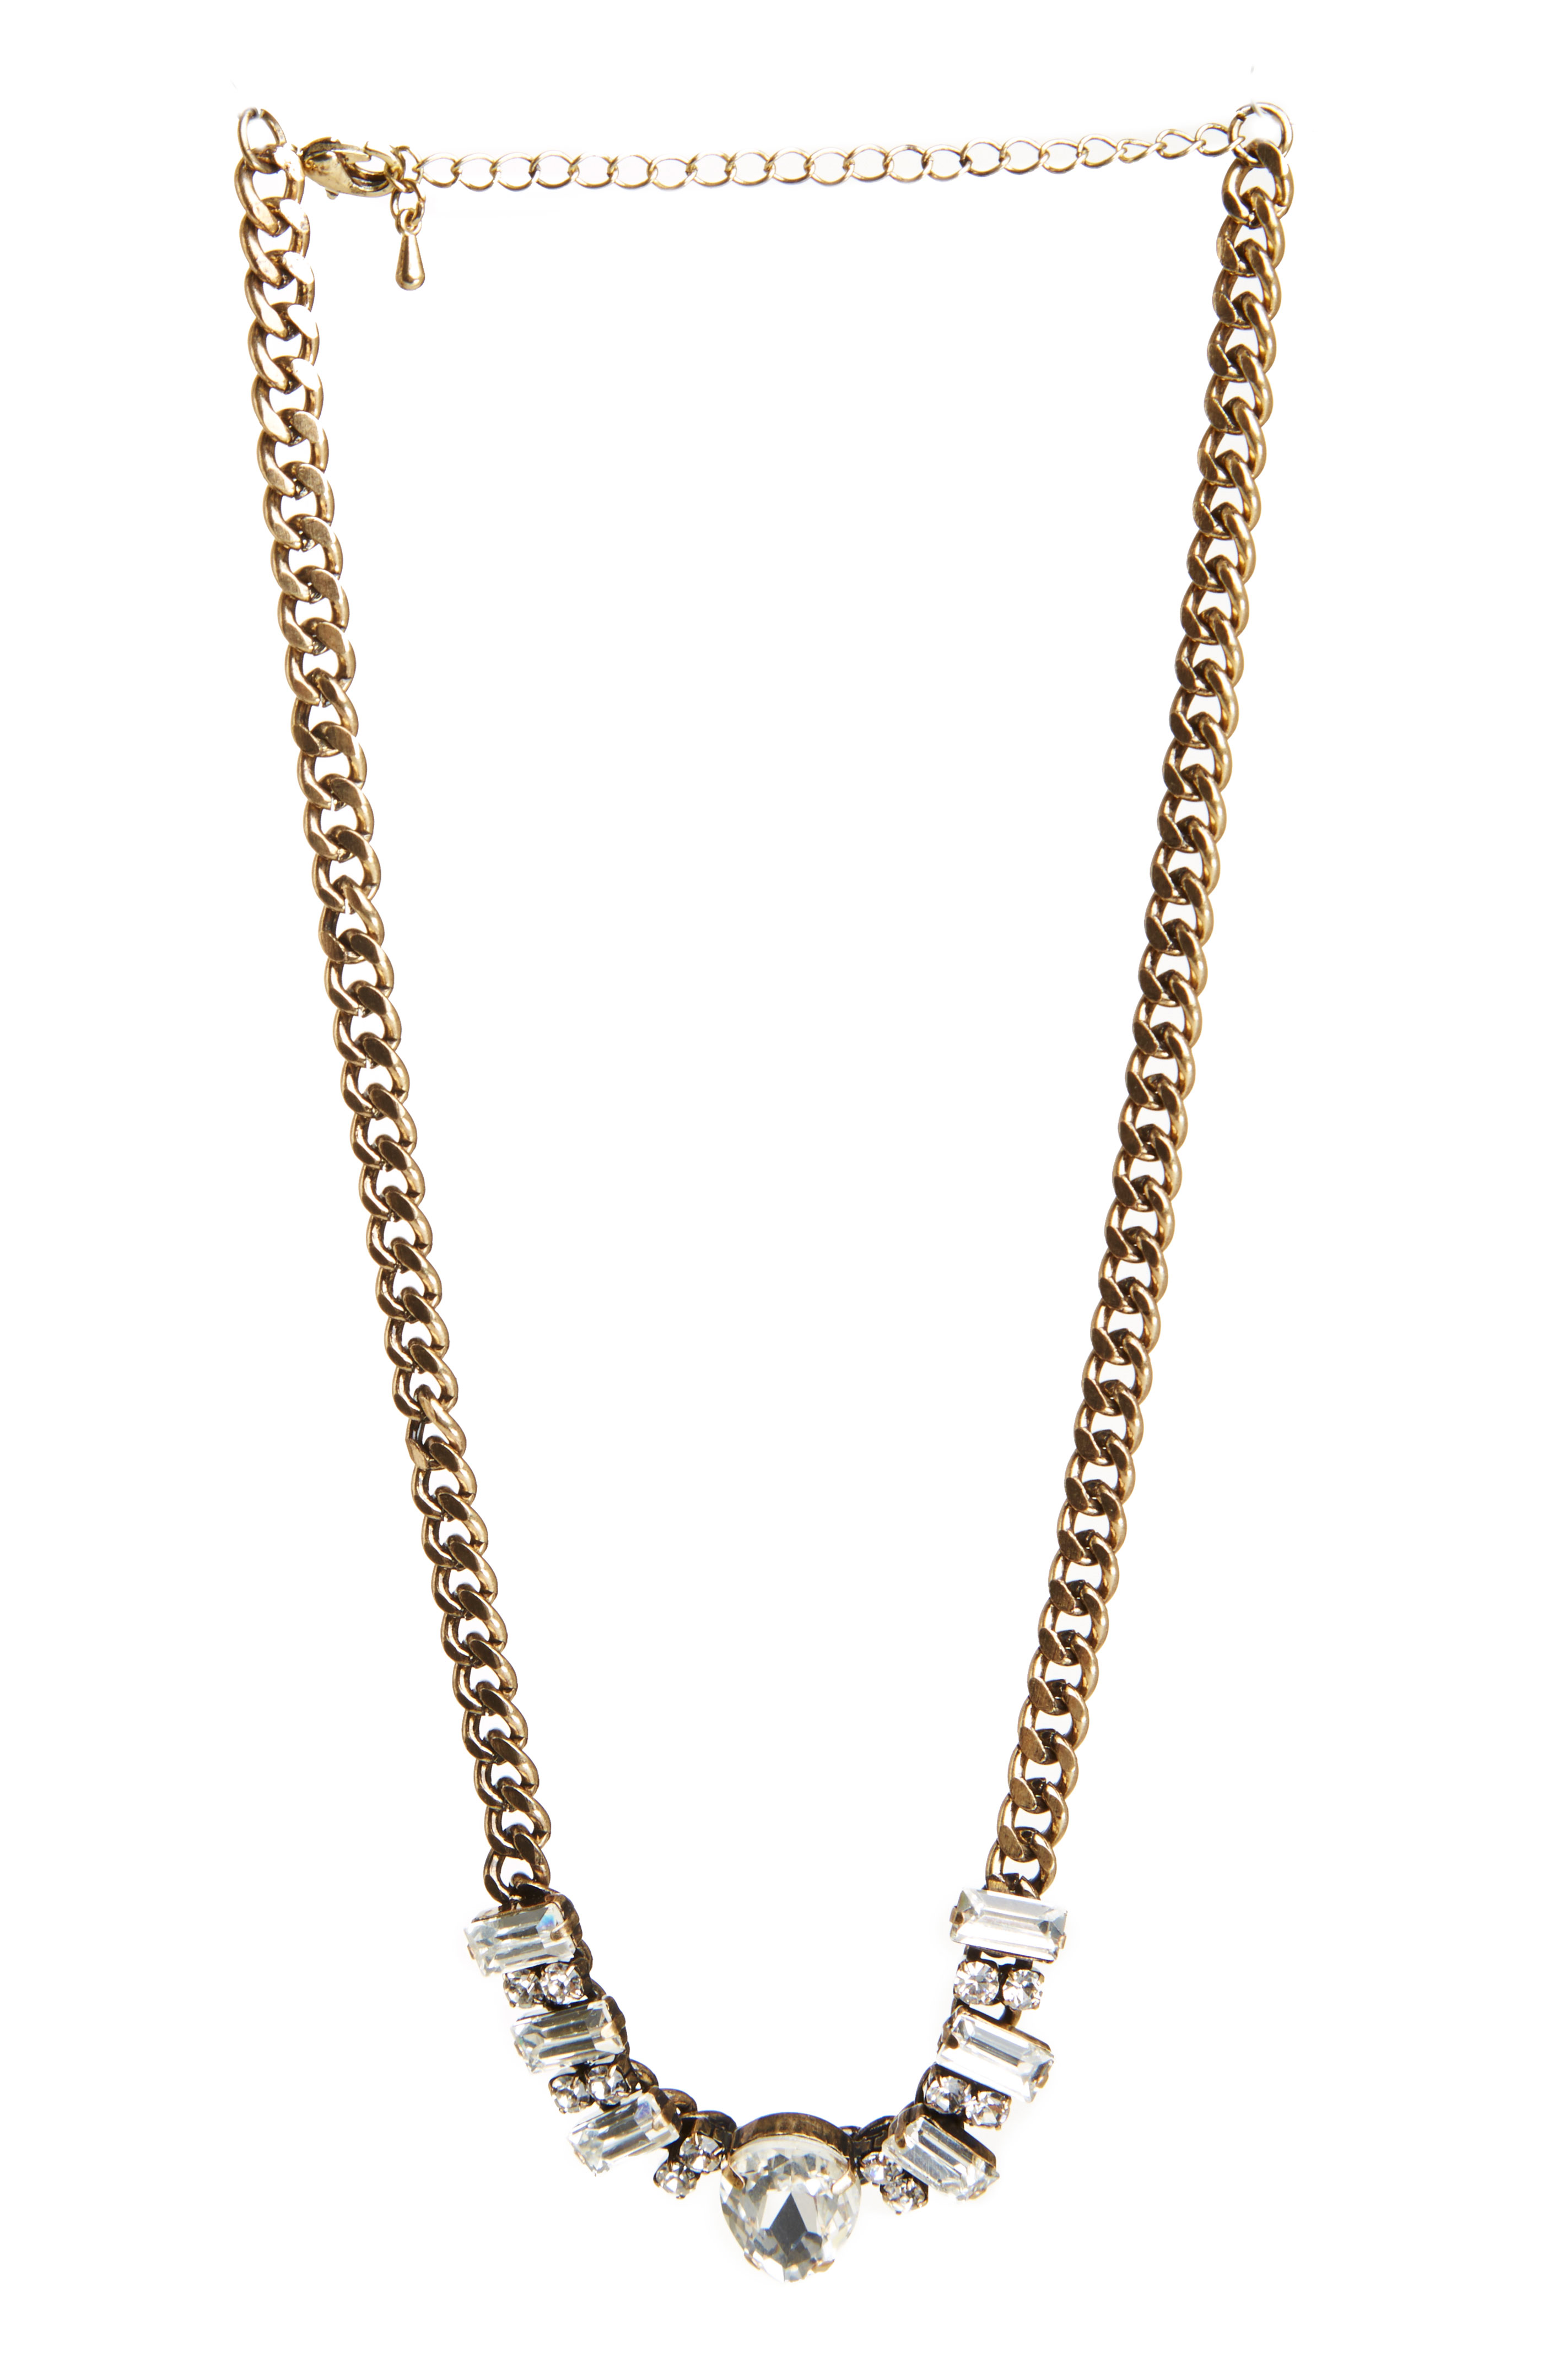 DAILYLOOK Claire Jeweled Statement Necklace in Crystal Clear at DAILYLOOK